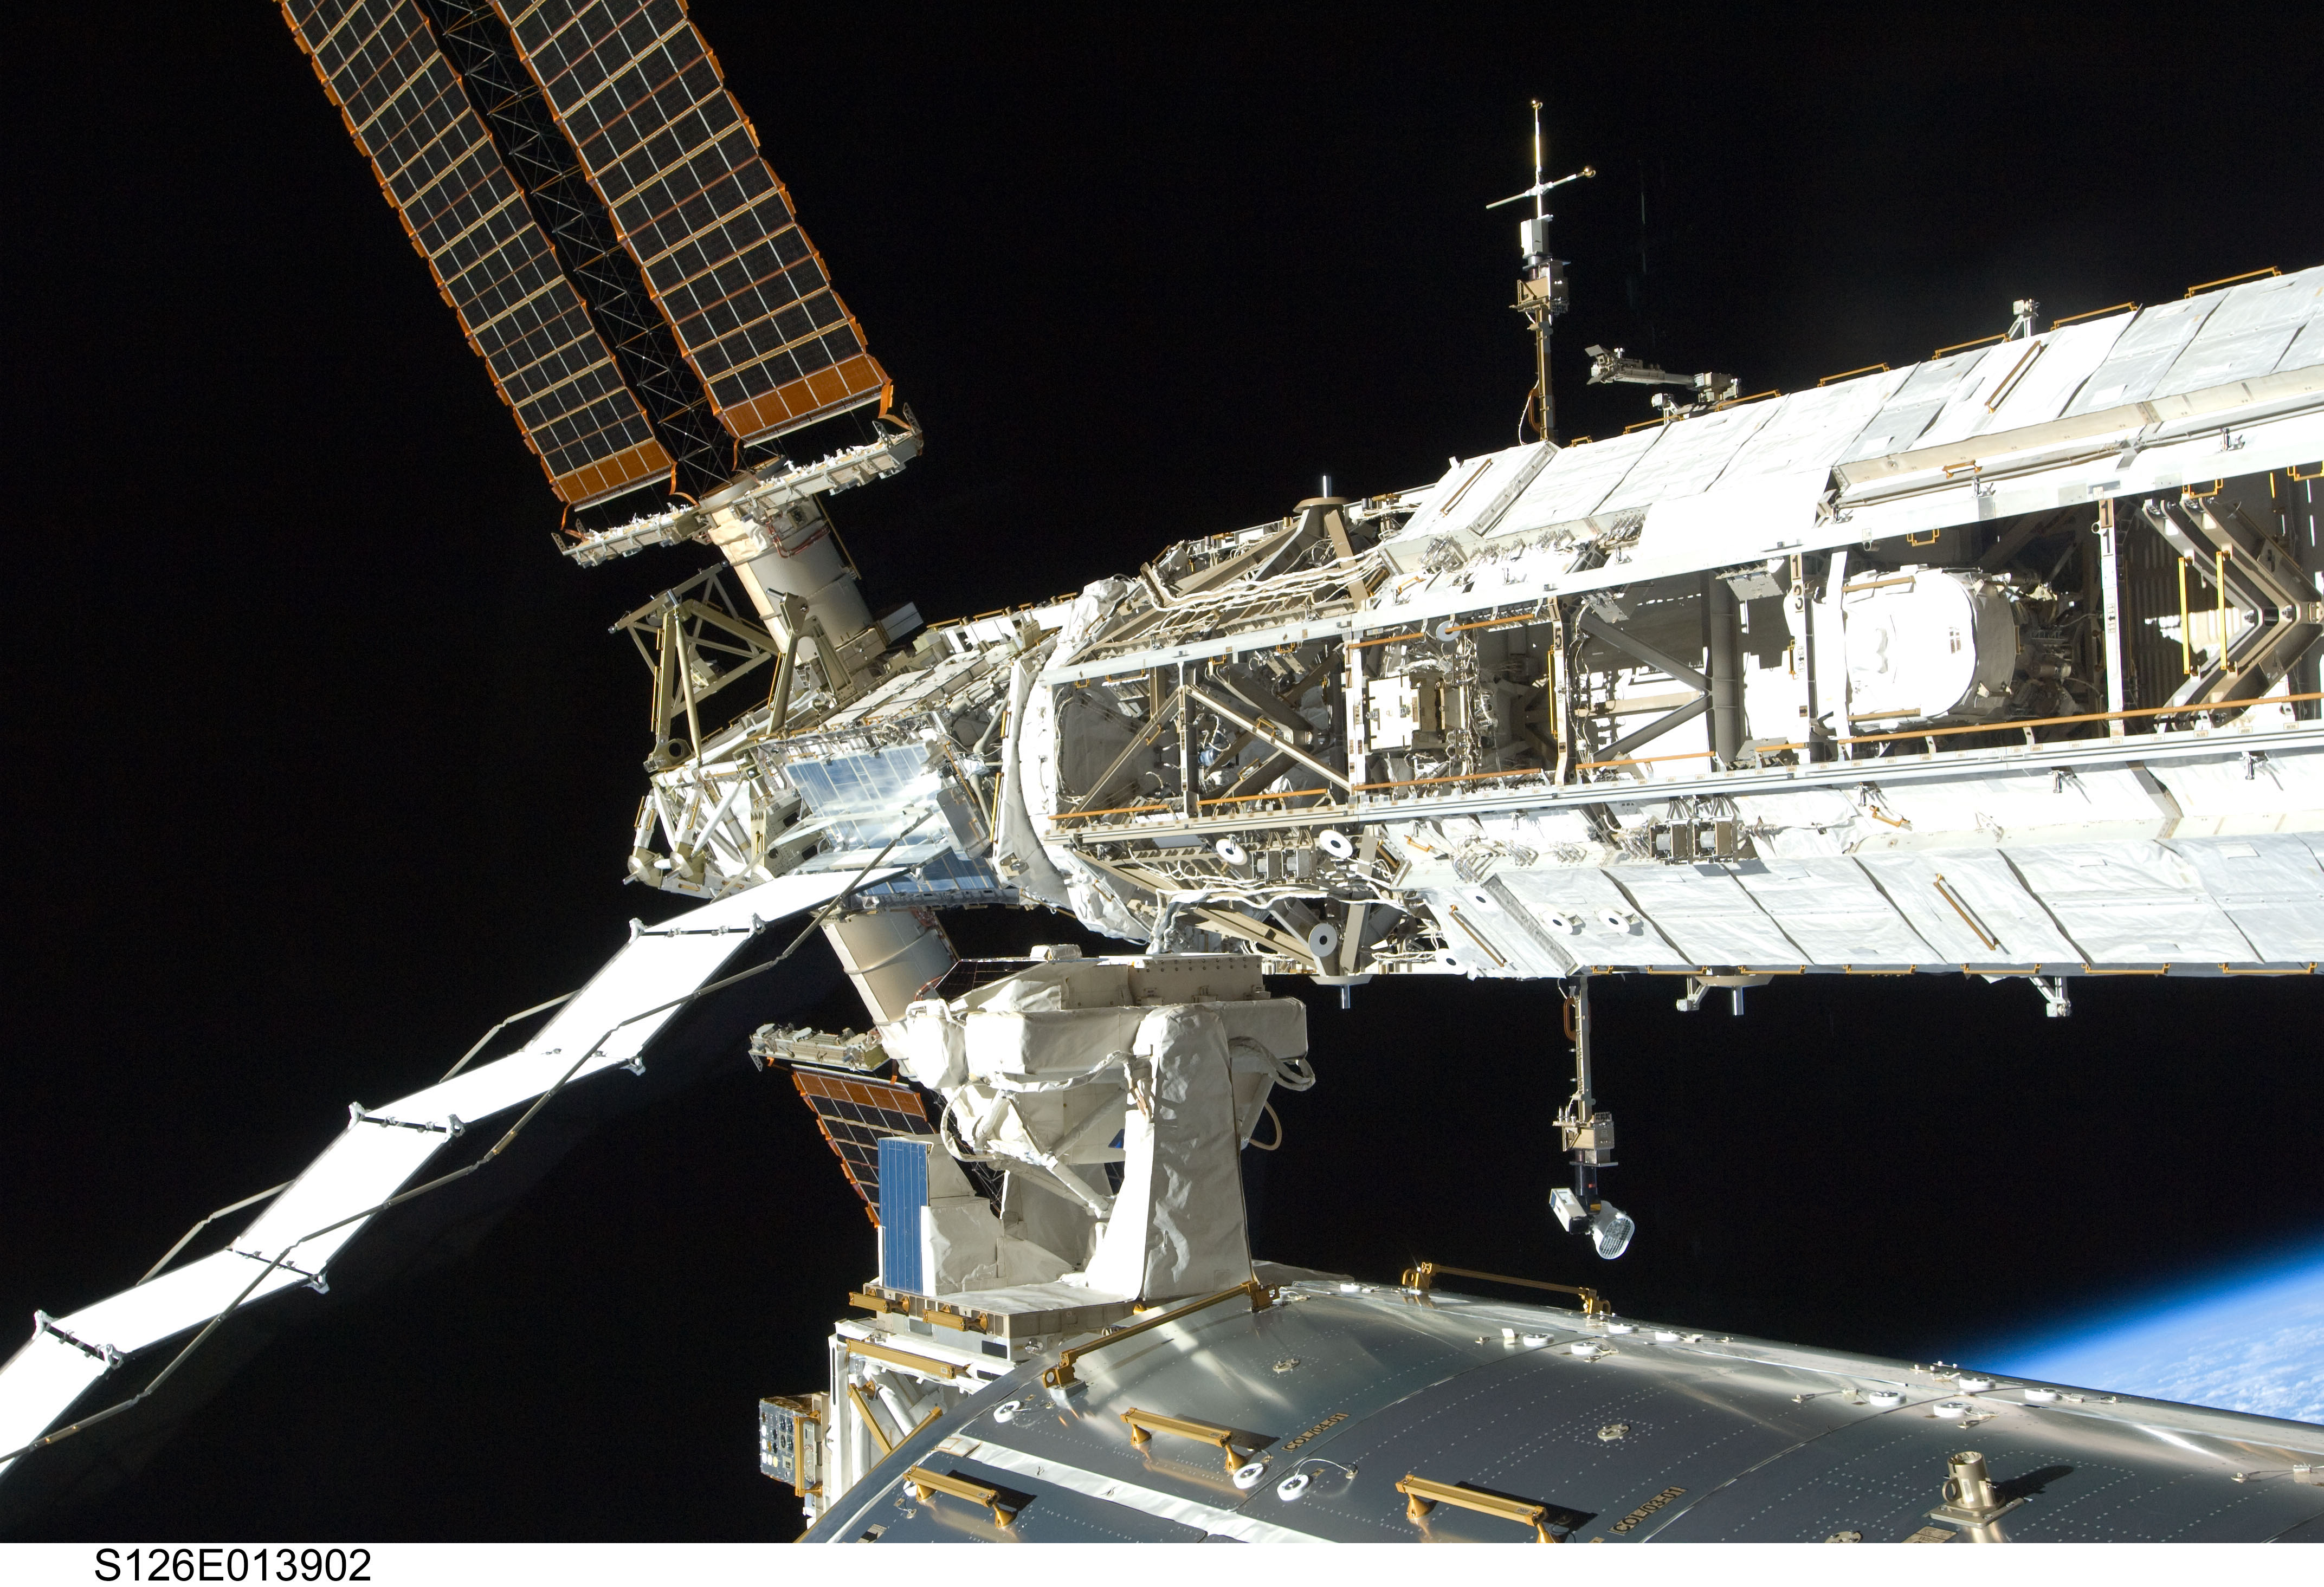 the concept of space travel and the international space station operations August 22, 2007 'space tourism' is the latest buzz phrase to hit the high-end travel industry with cosmos tourists already visiting the international space station now news that a luxury.